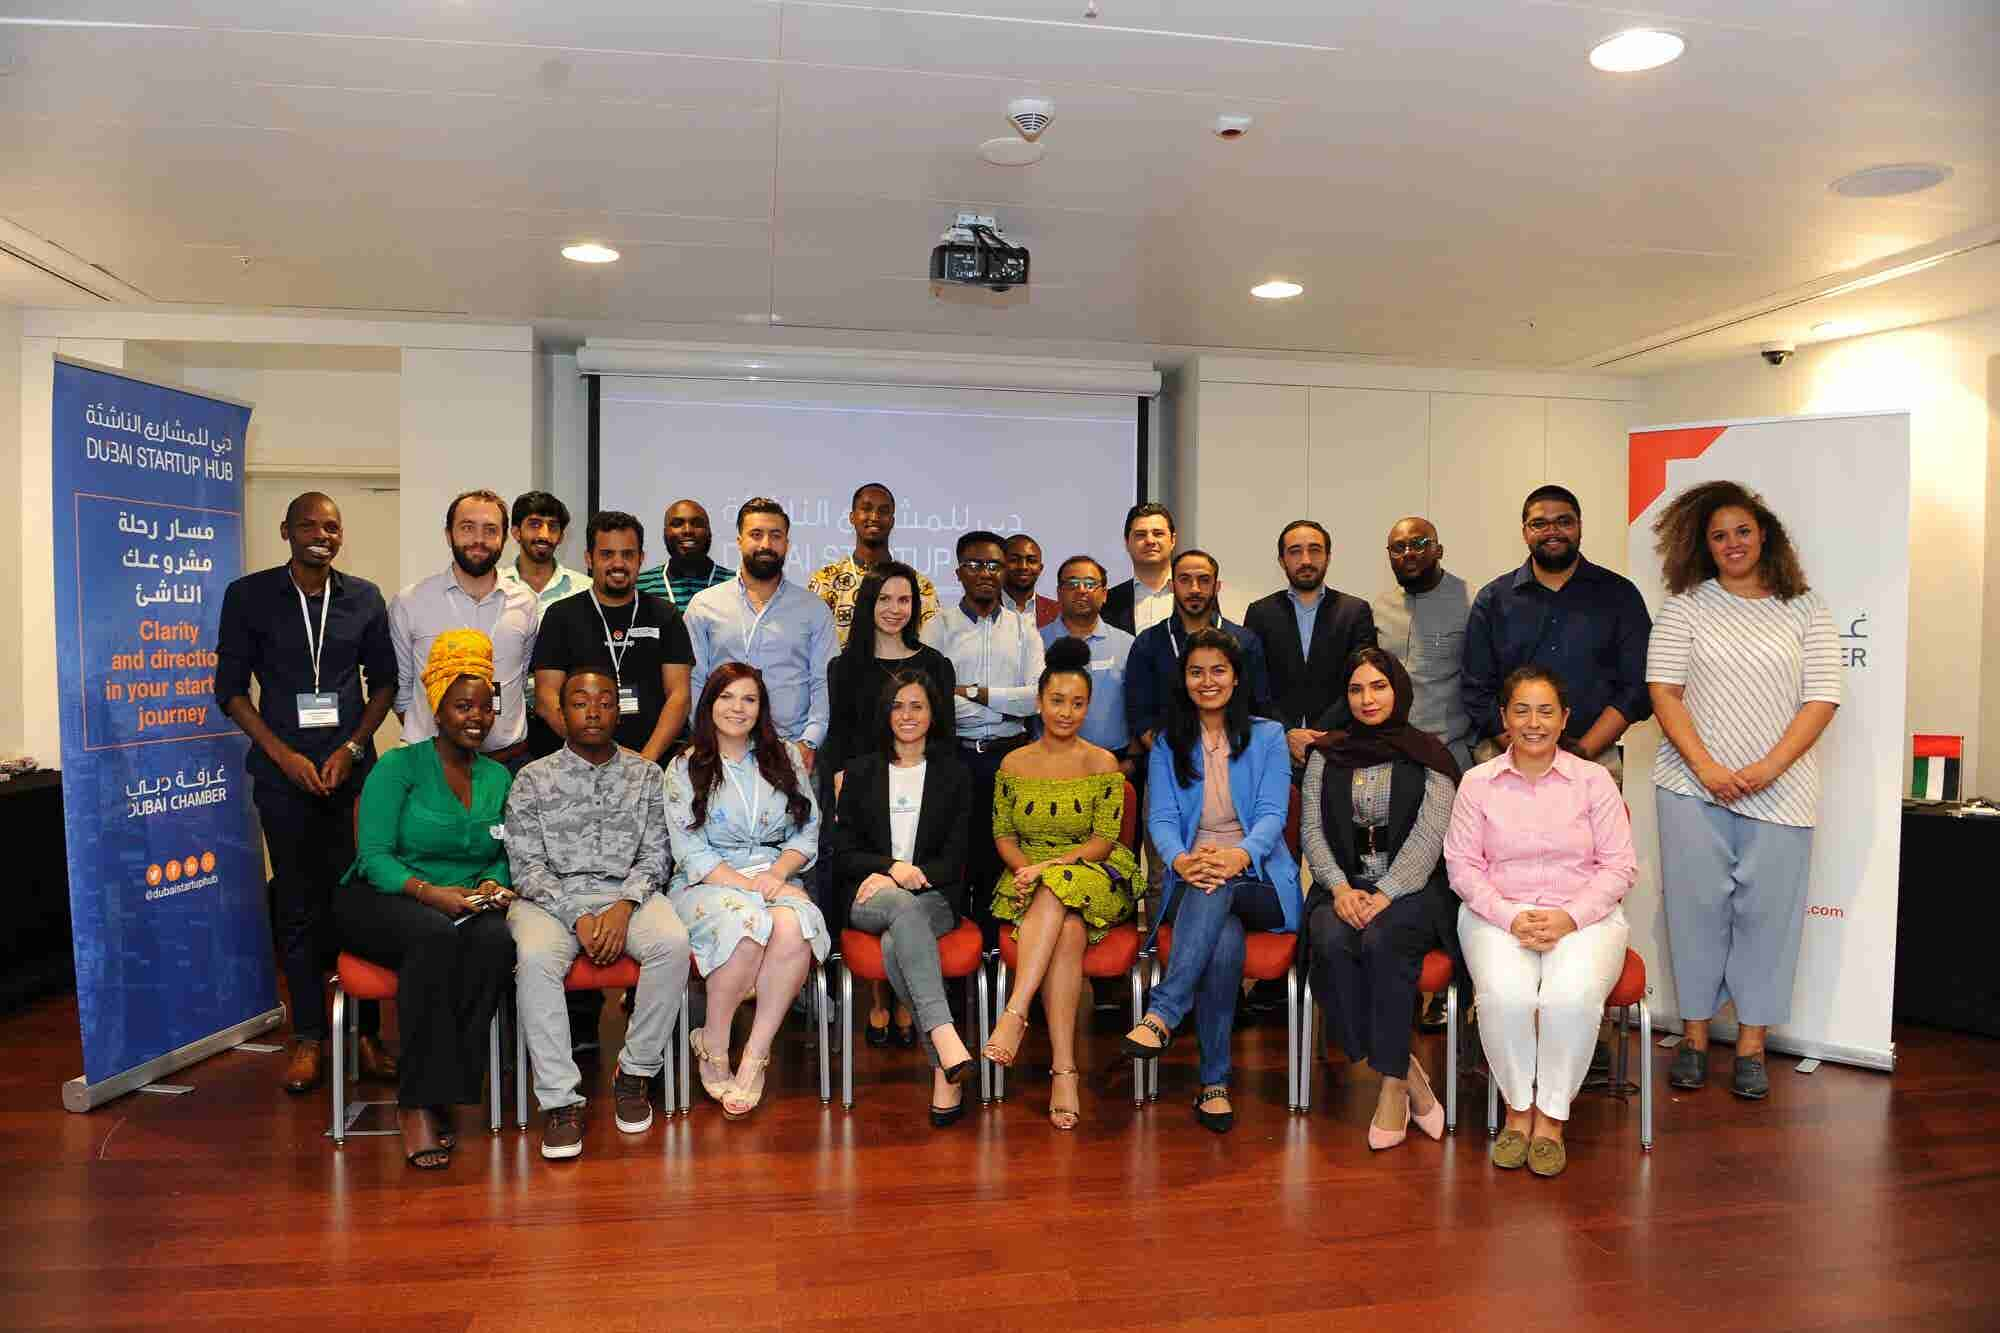 Dubai Chamber's Chamberthon In Rwanda Pairs Entrepreneurs From The UAE And Africa To Build A Cross-Border Mentorship Program